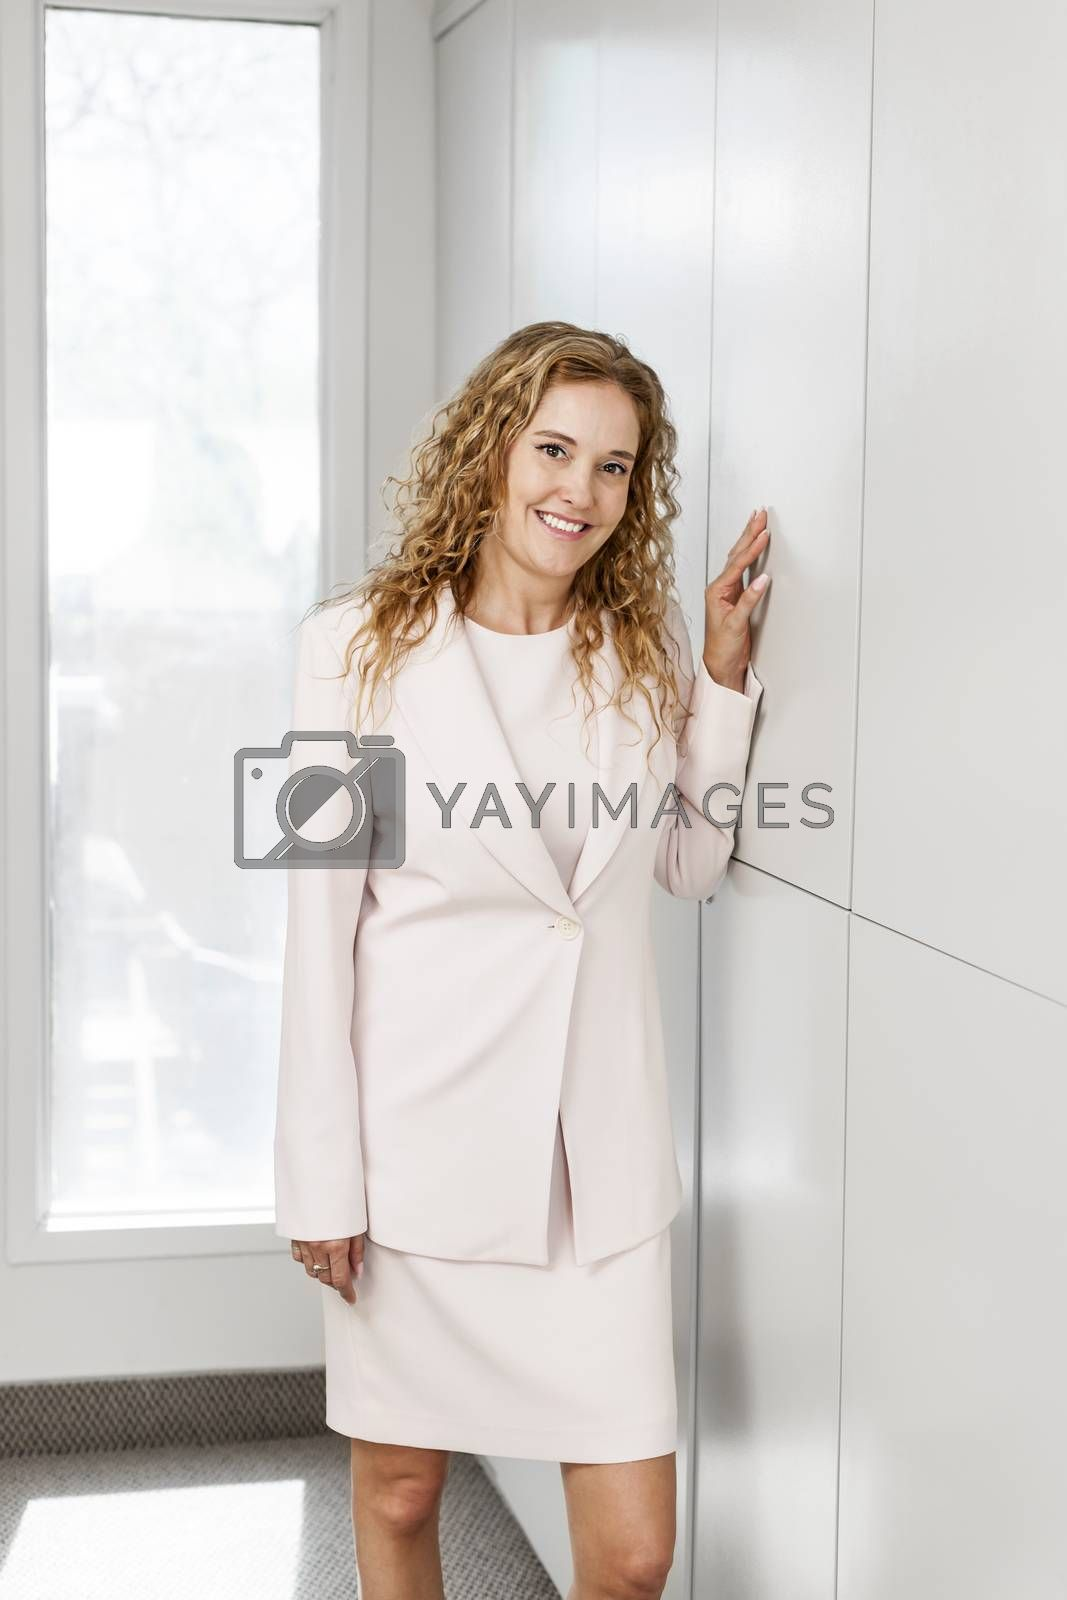 Smiling business woman standing in office hallway